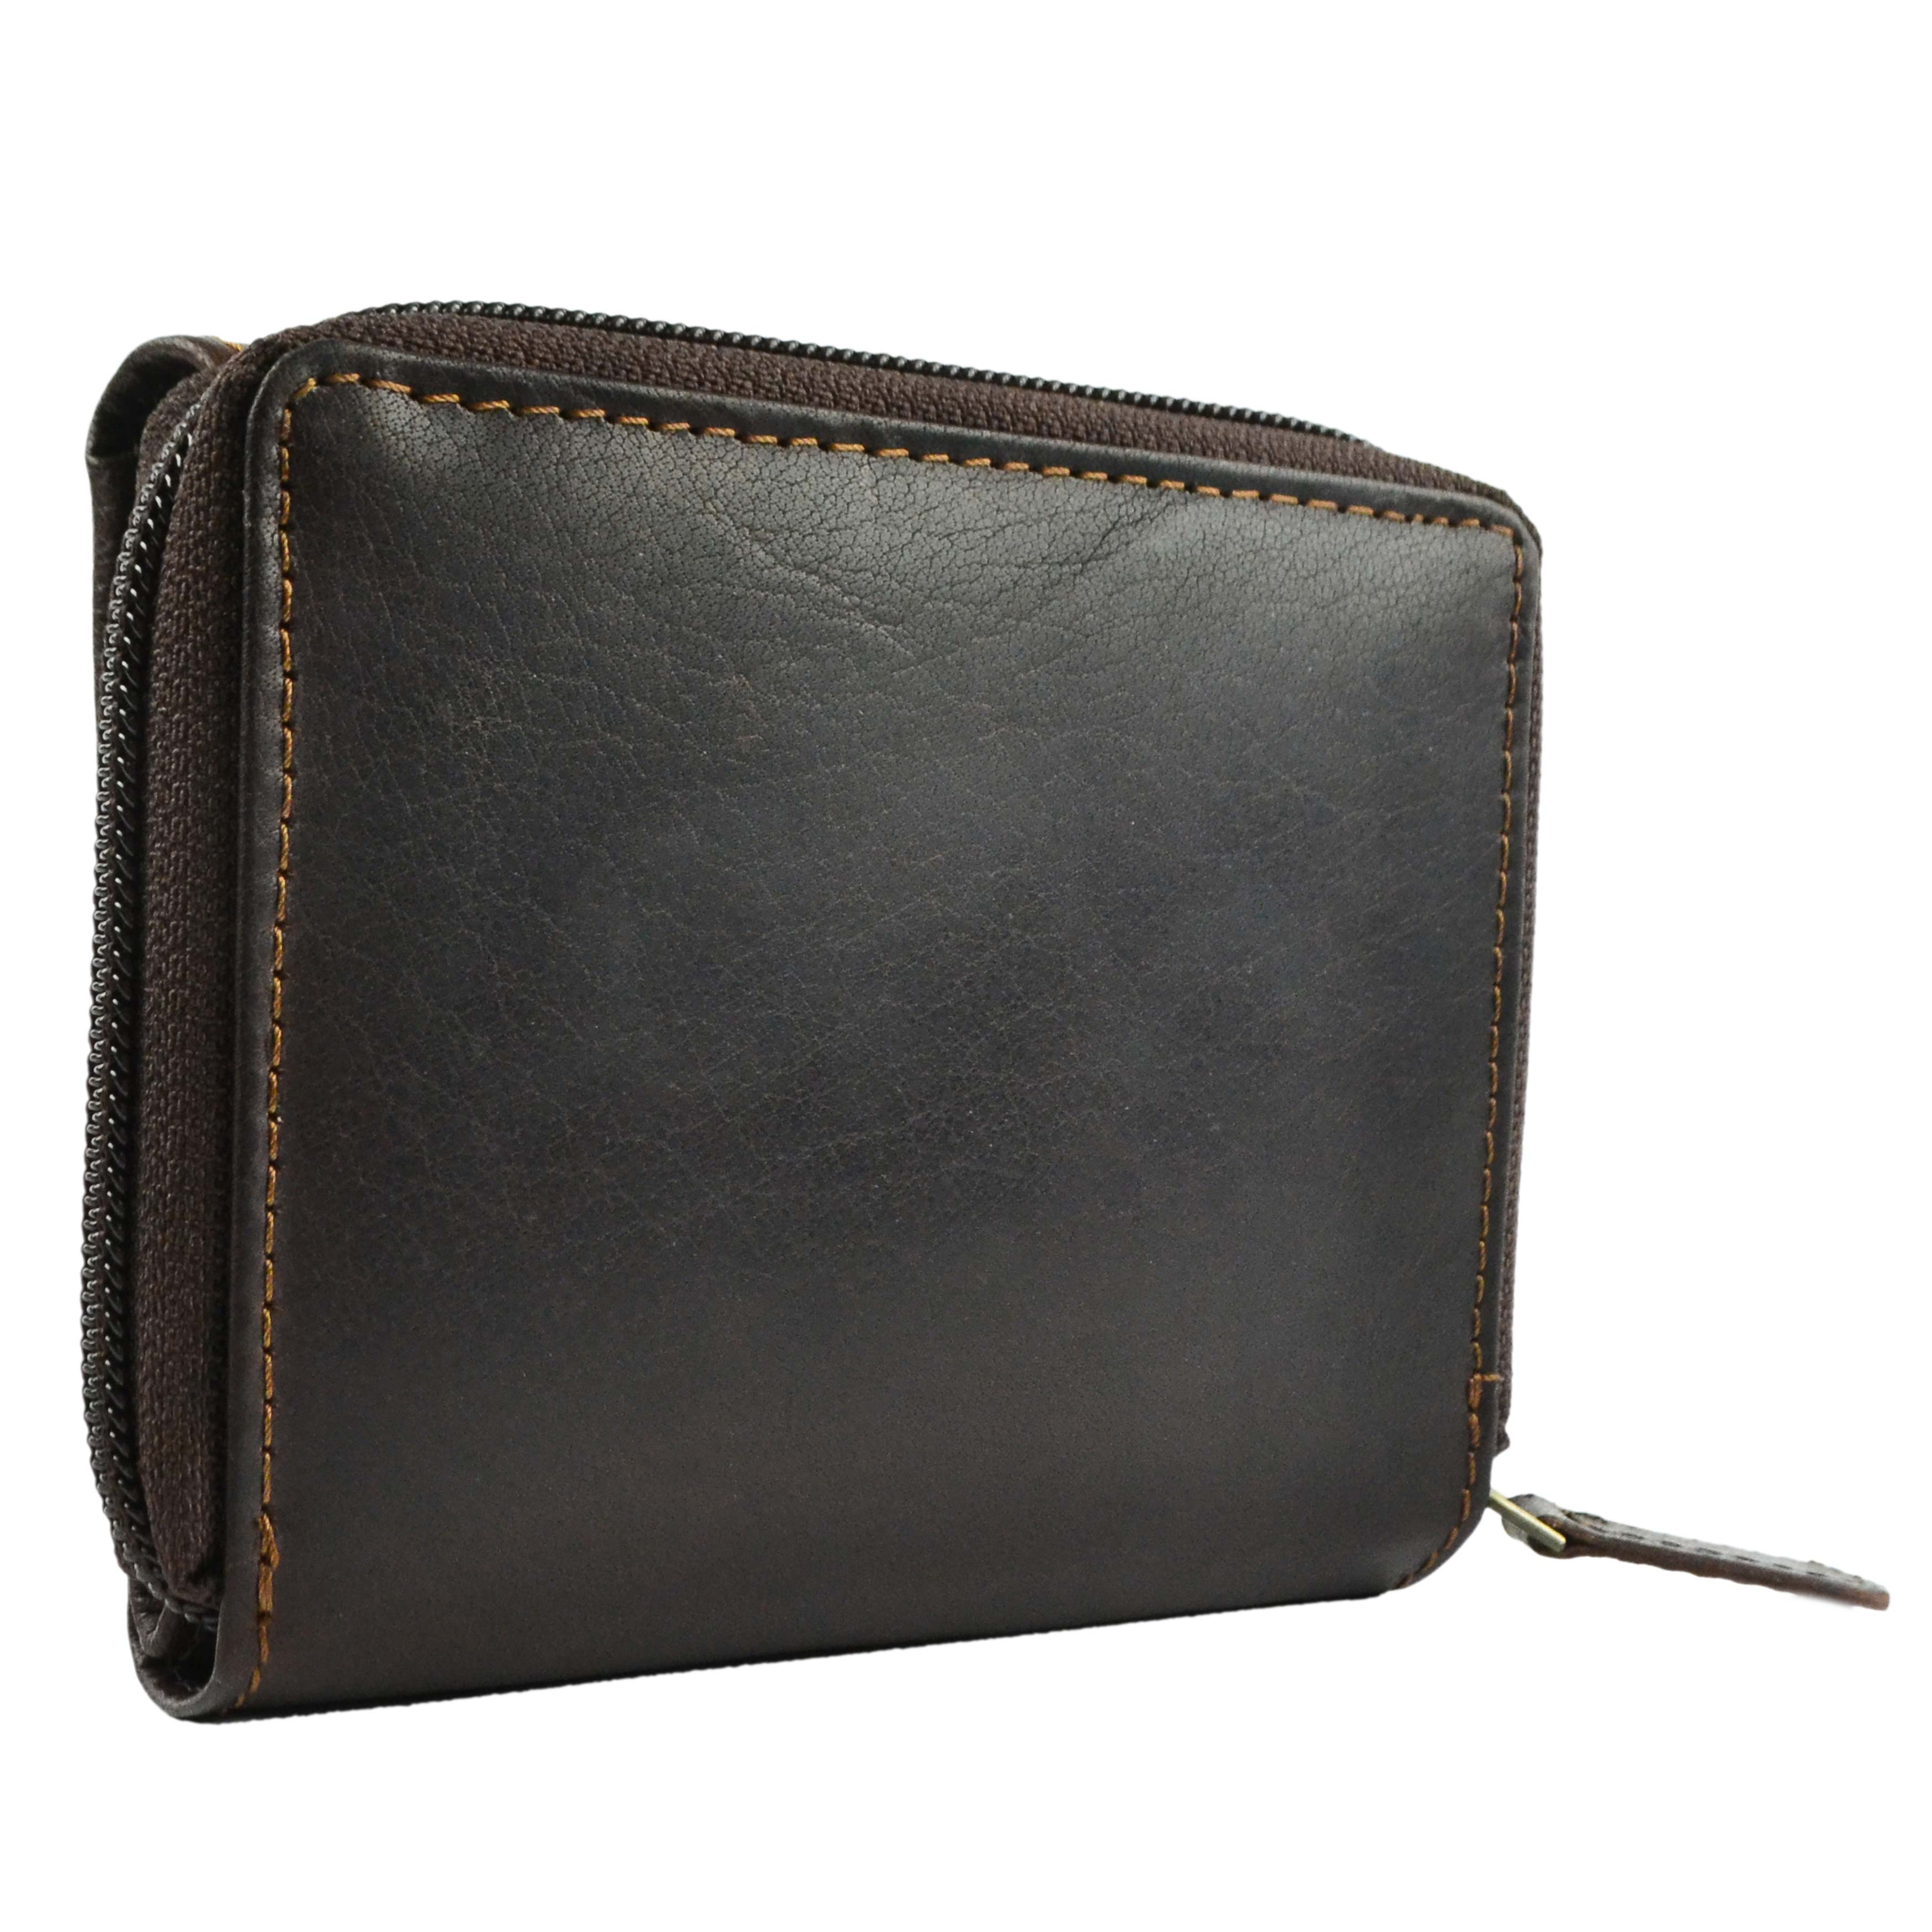 NEW Compact Ladies Leather Flap Over Purse//Wallet by Bolla Bags Gift Boxed Handy